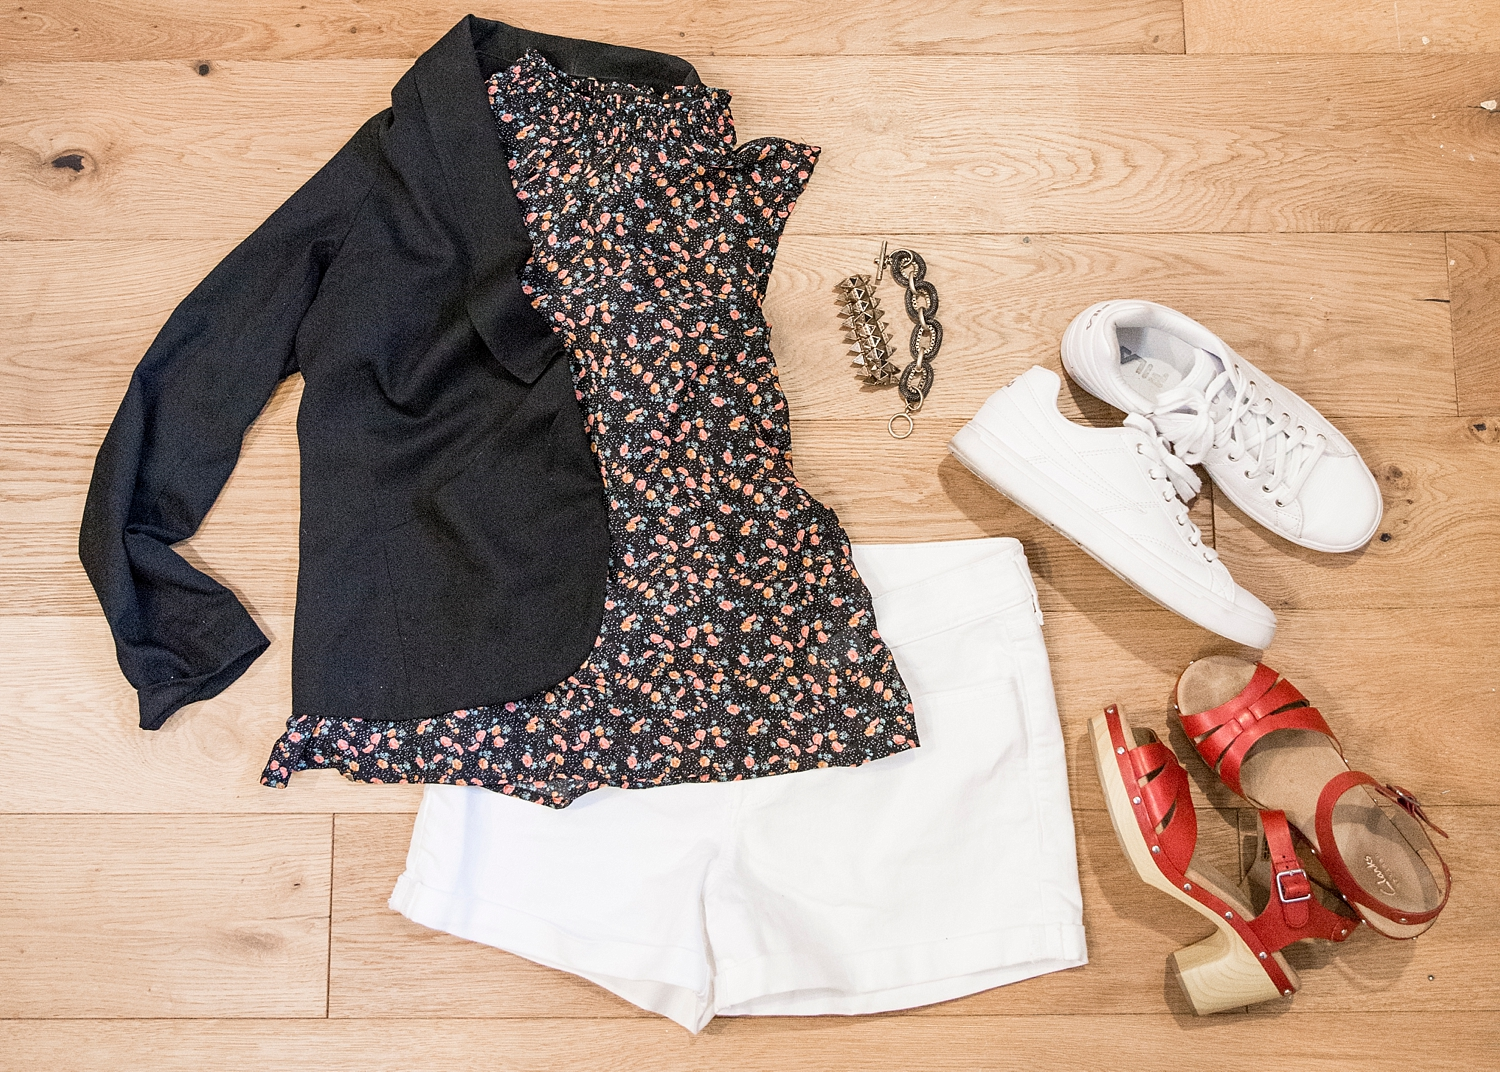 Outfit ideas for women over 40!White shorts and a black blazer are never wrong :) More spring outfit ideas for women on the blog!!